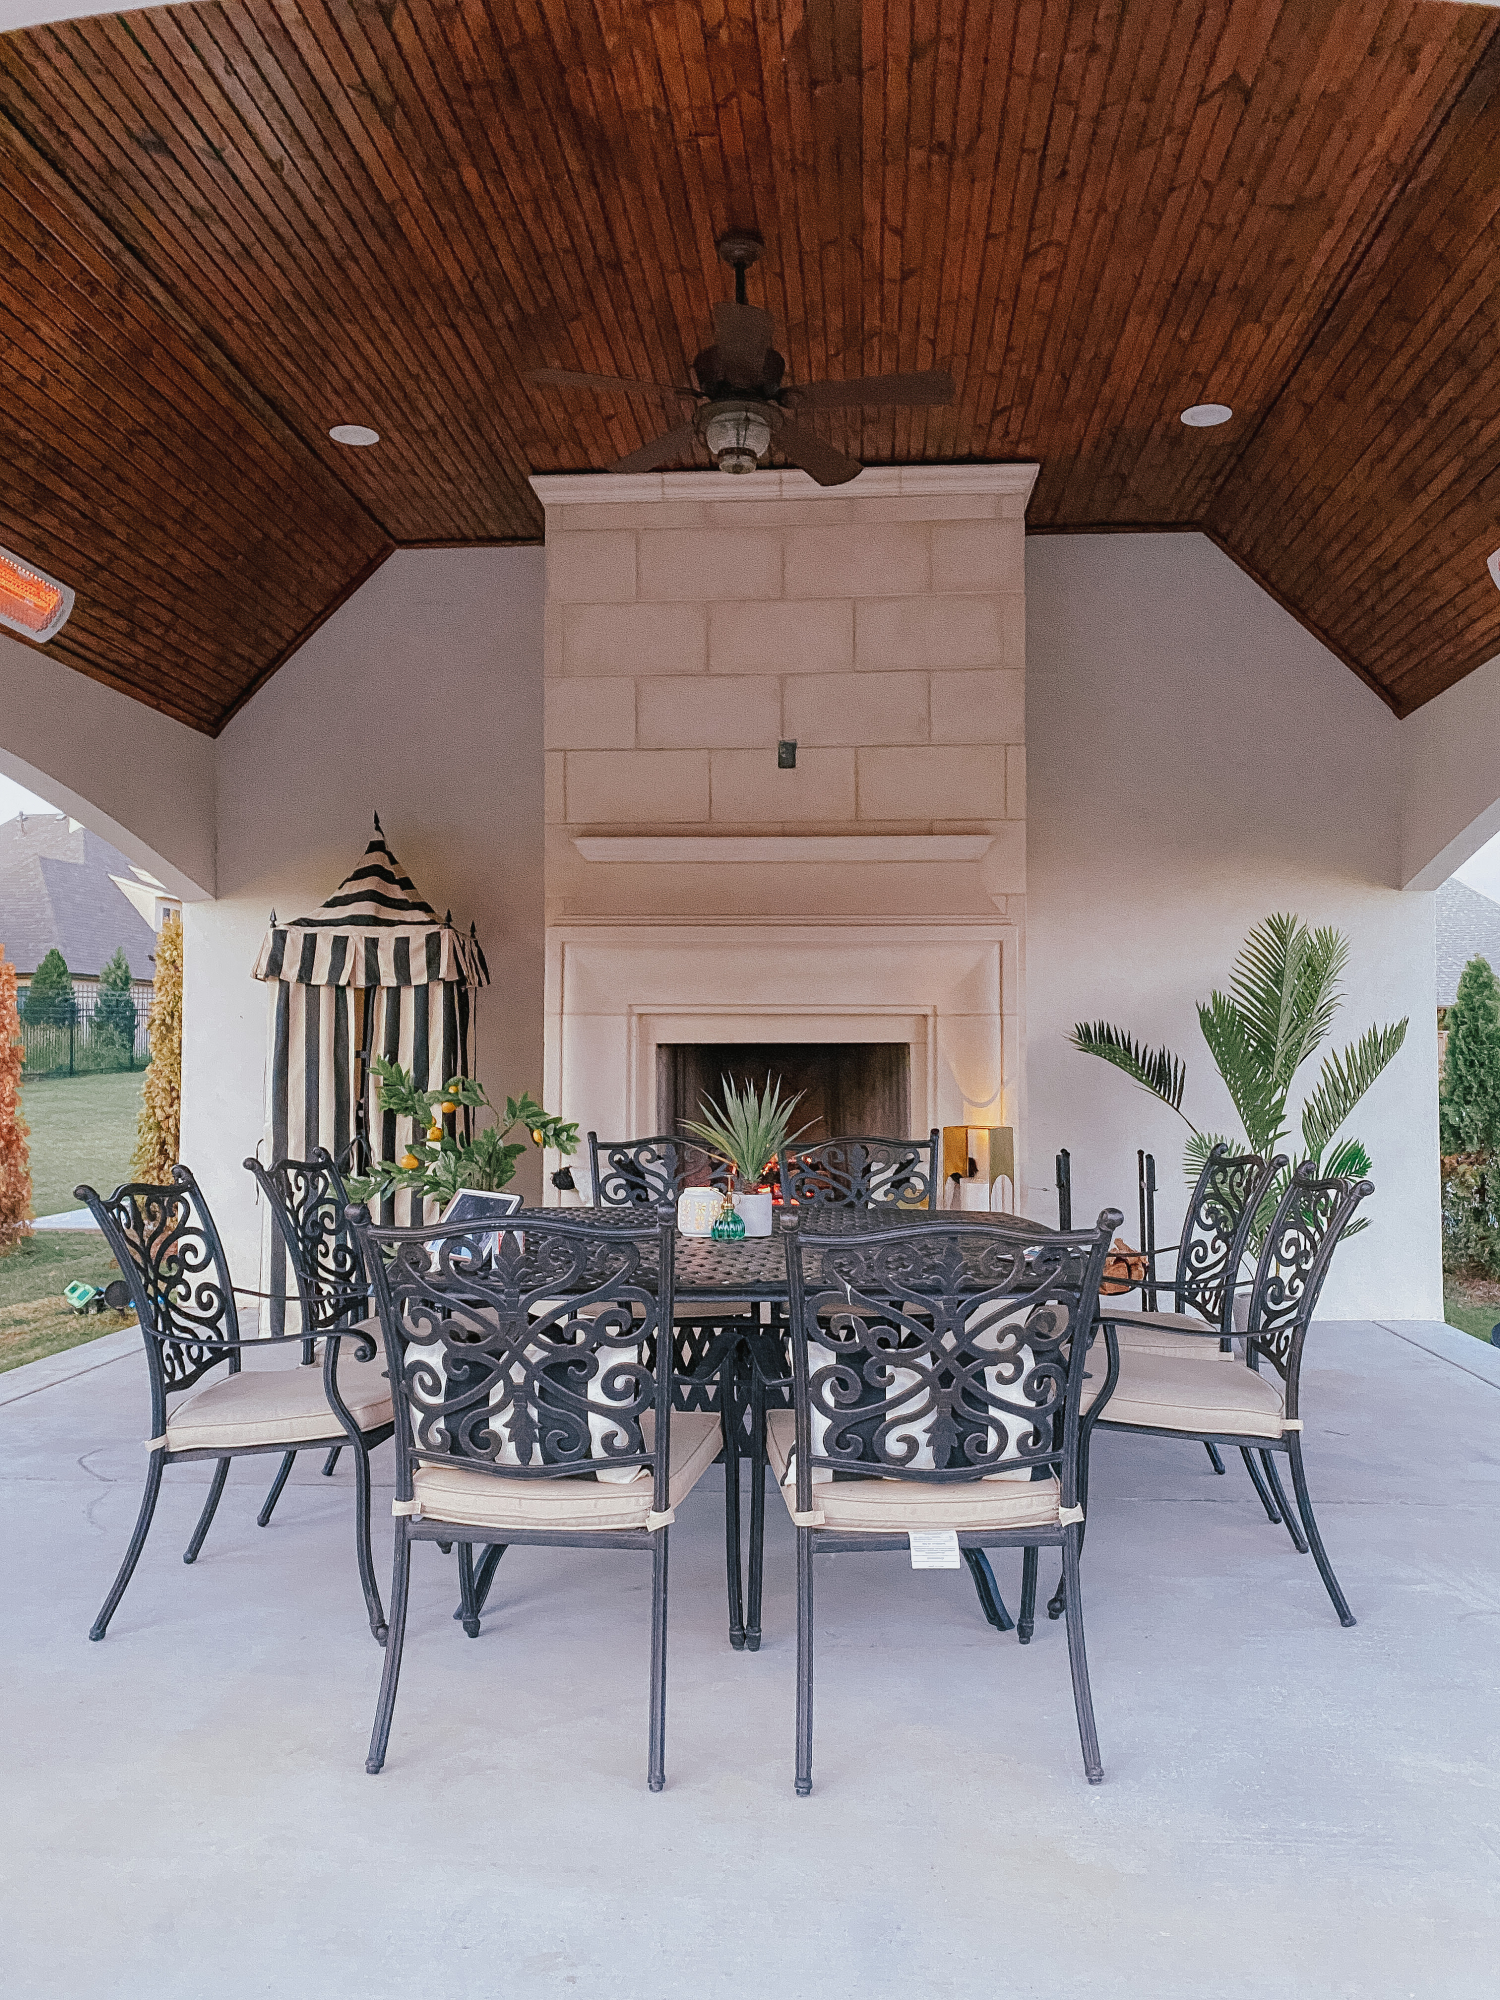 Backyard Decor by popular US life and style blog, The Sweetest Thing: image of a black metal outdoor table and chairs, faux palm tree plant, fireplace, metal log holder, faux yucca plant, faux lemon tree, black and white tent, and gold lanterns.